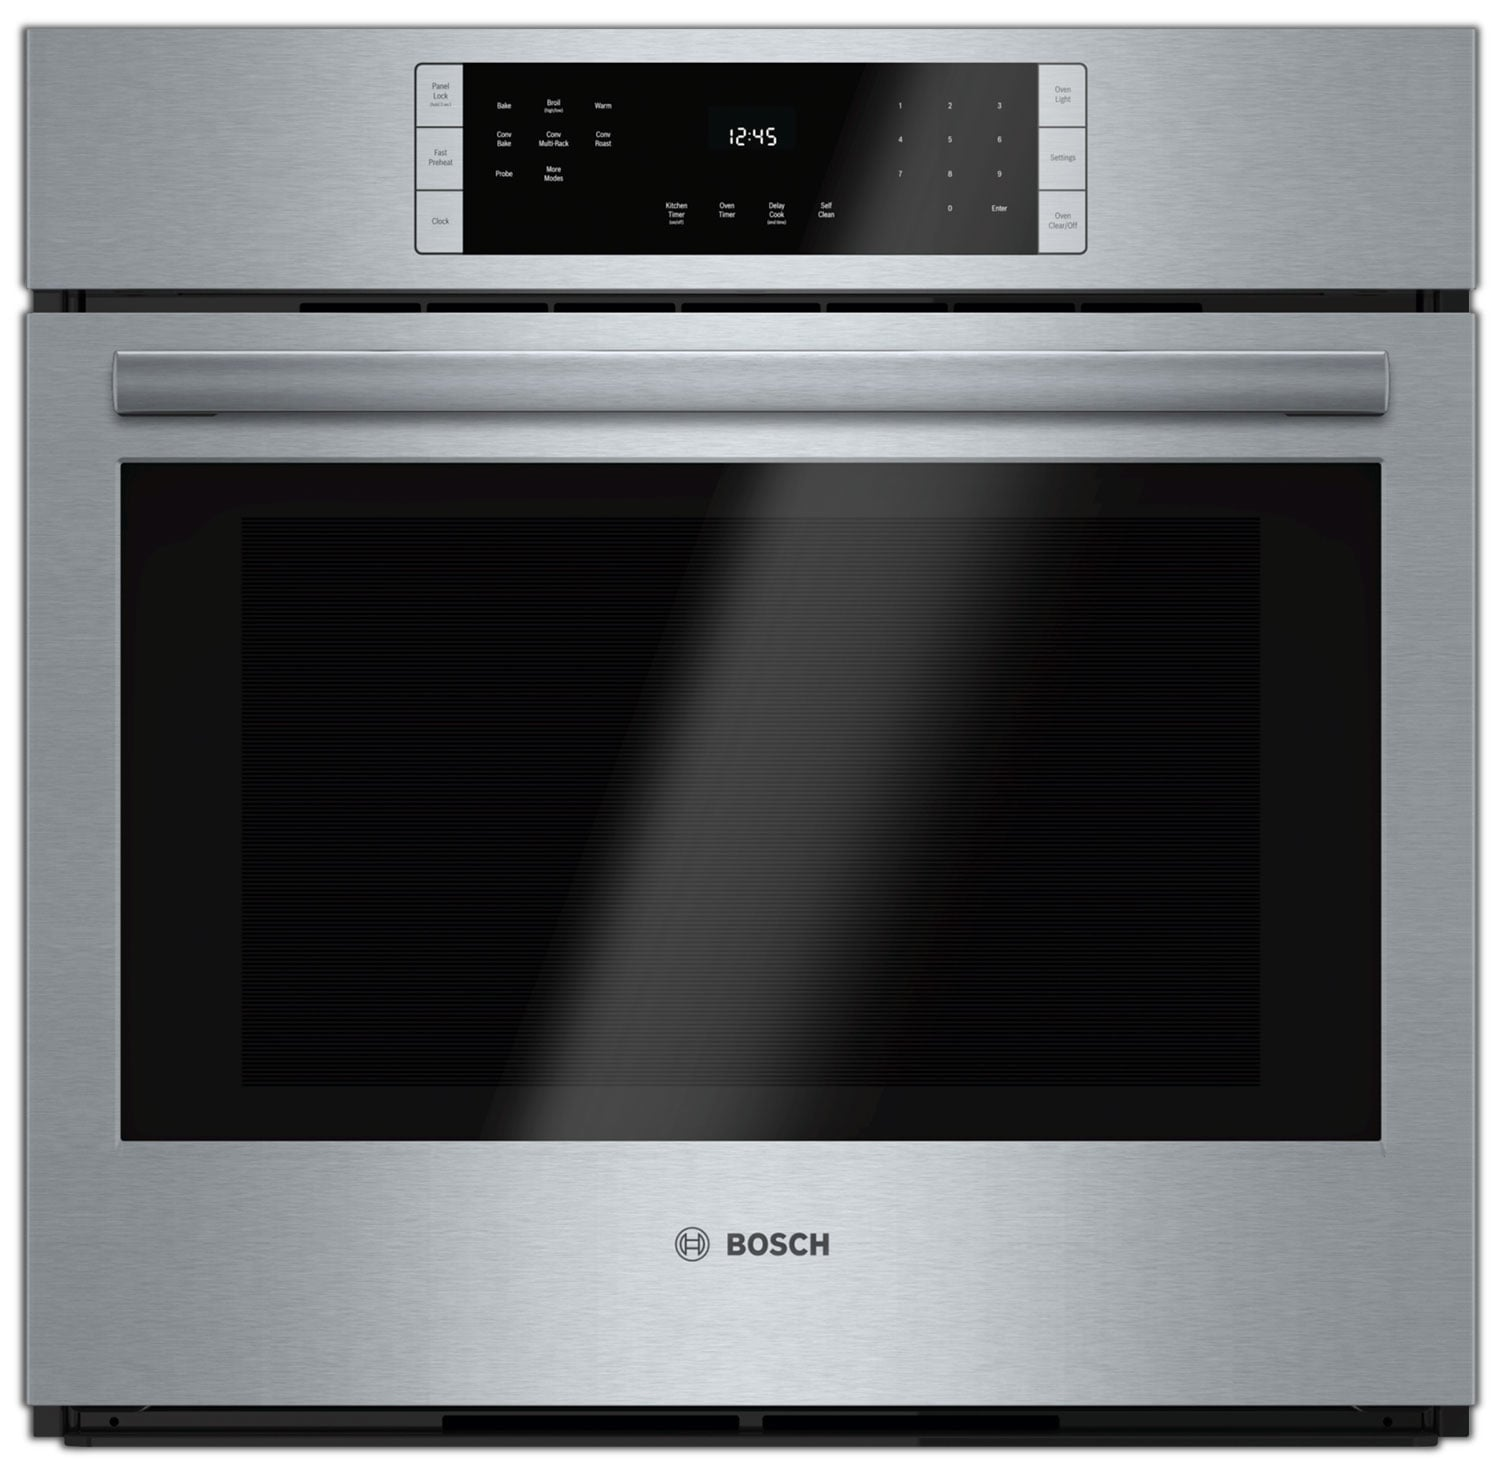 Cooking Products - Bosch Stainless Steel Wall Oven (4.6 Cu. Ft.) - HBL8451UC